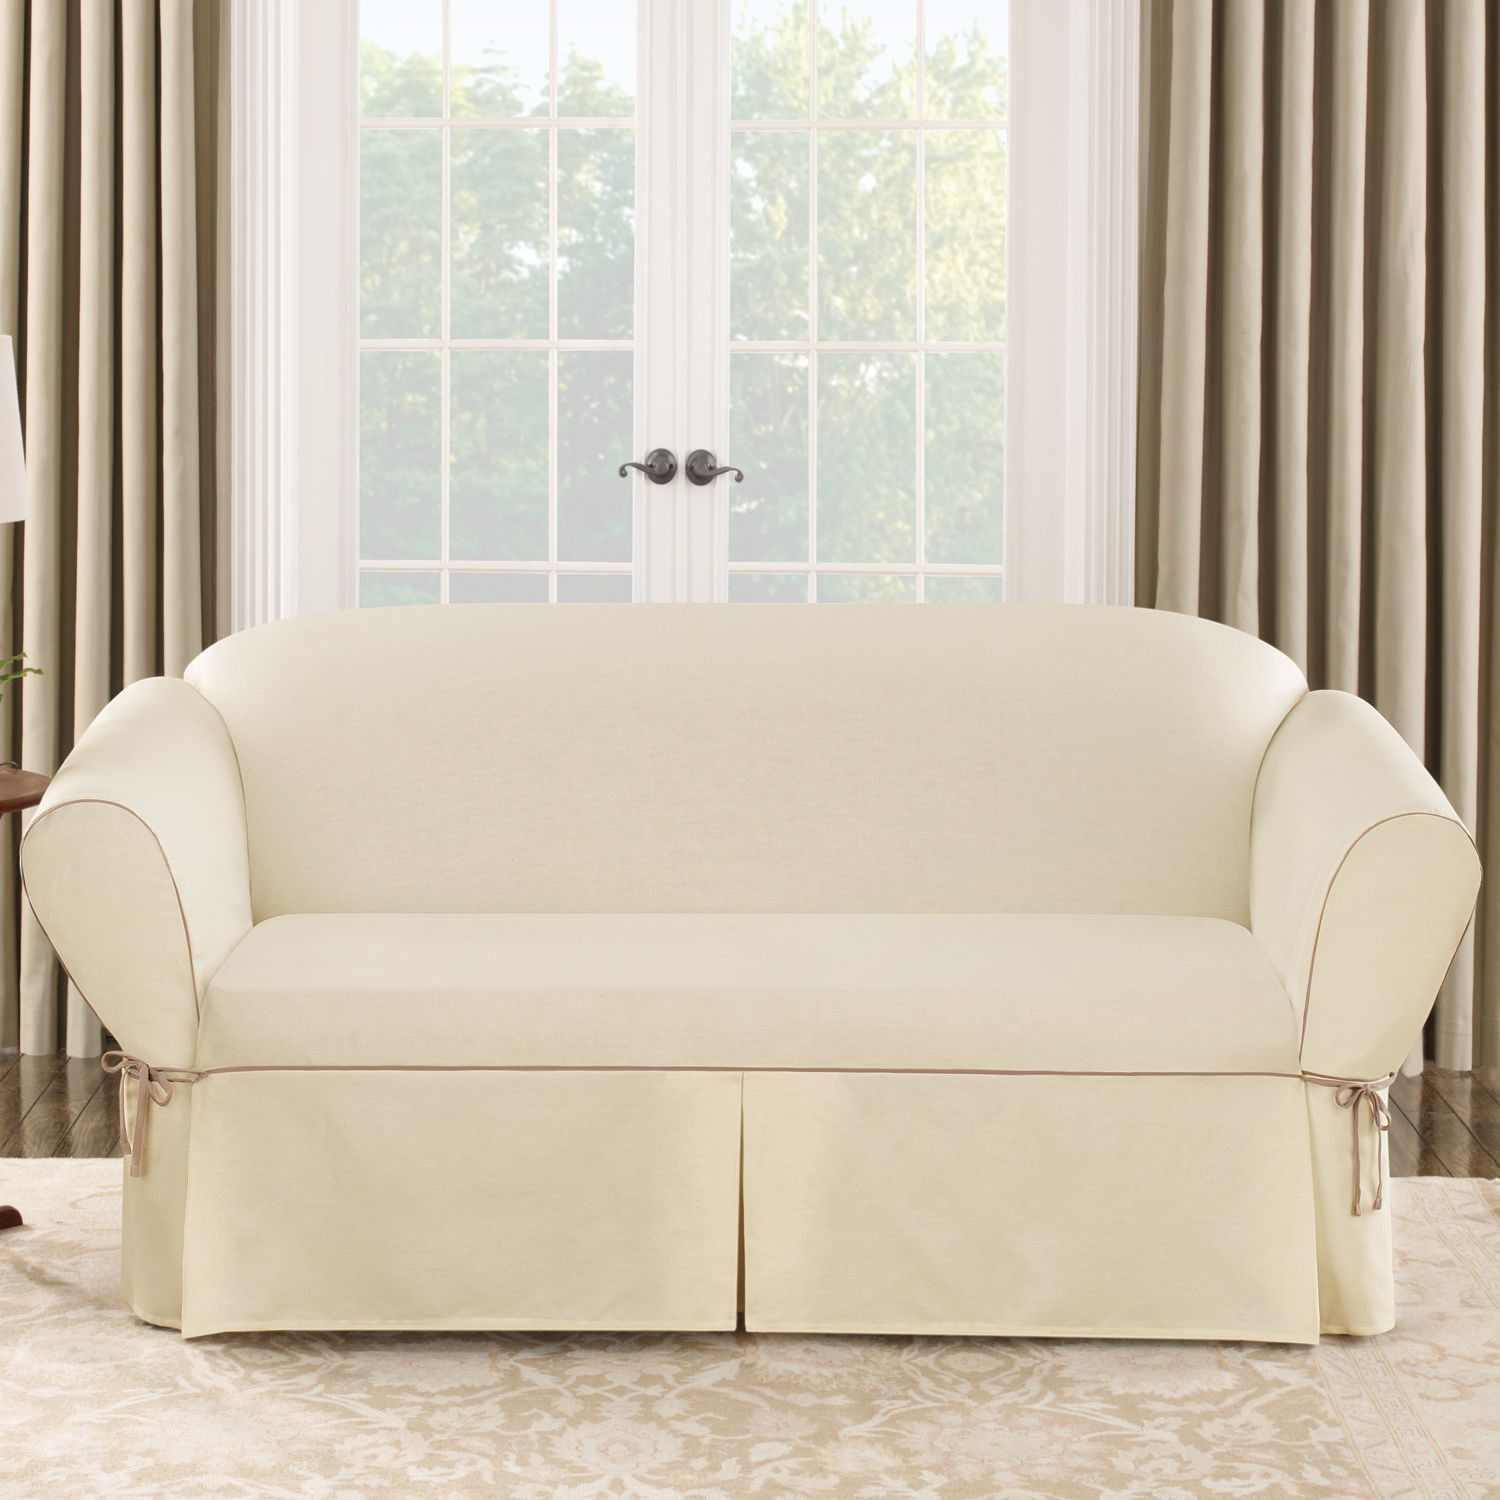 Clayton Marcus Sofa Couch Floral Vintage Style